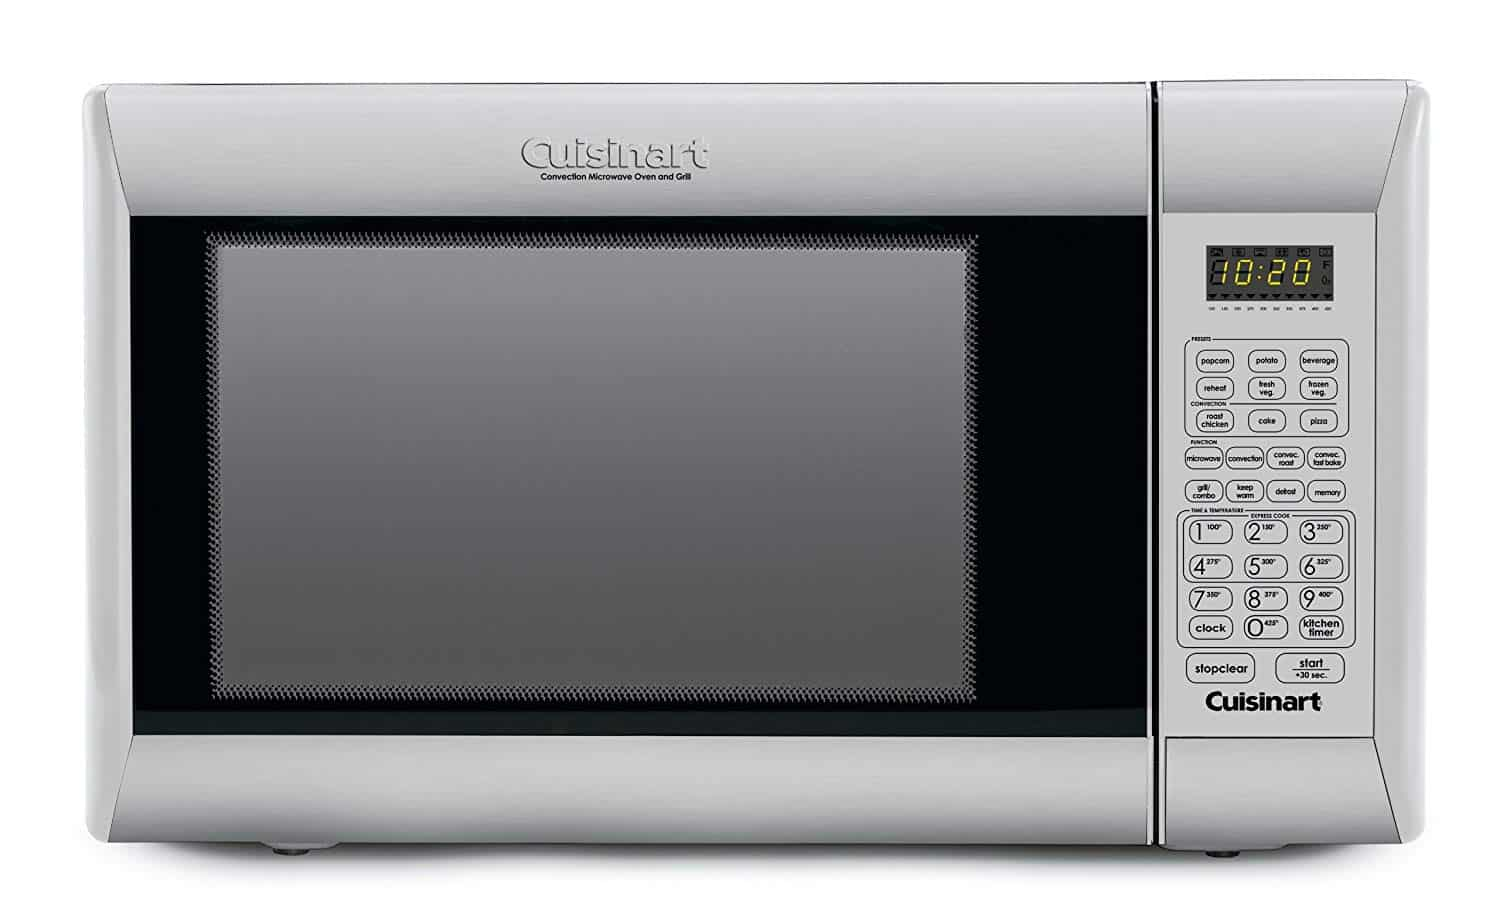 Cuisinart Convection Microwave with Grill